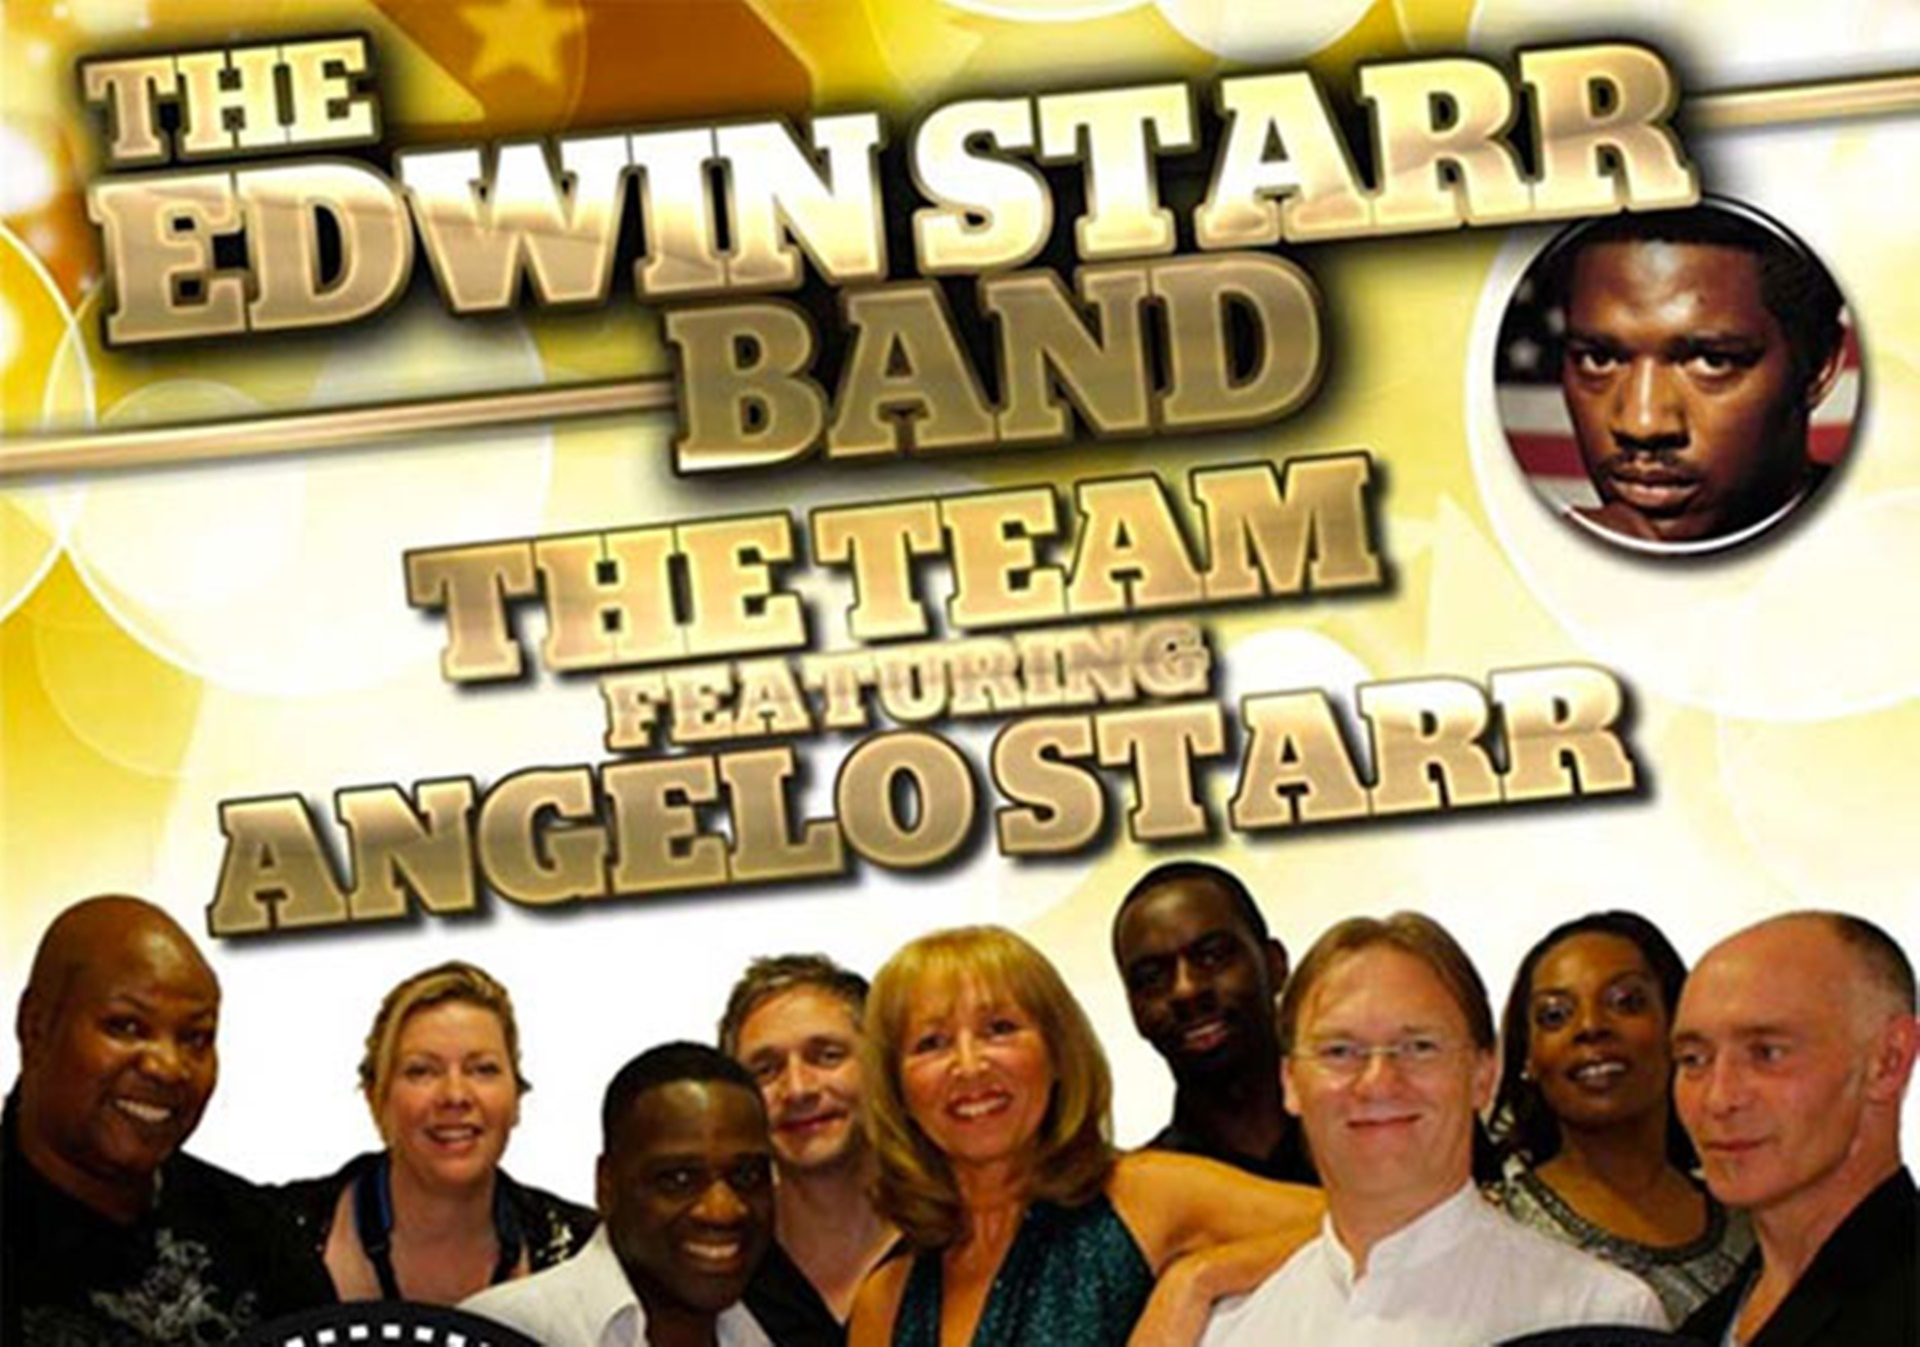 Edwin Starr's Band The Team featuring Angelo Starr at The Concorde Club